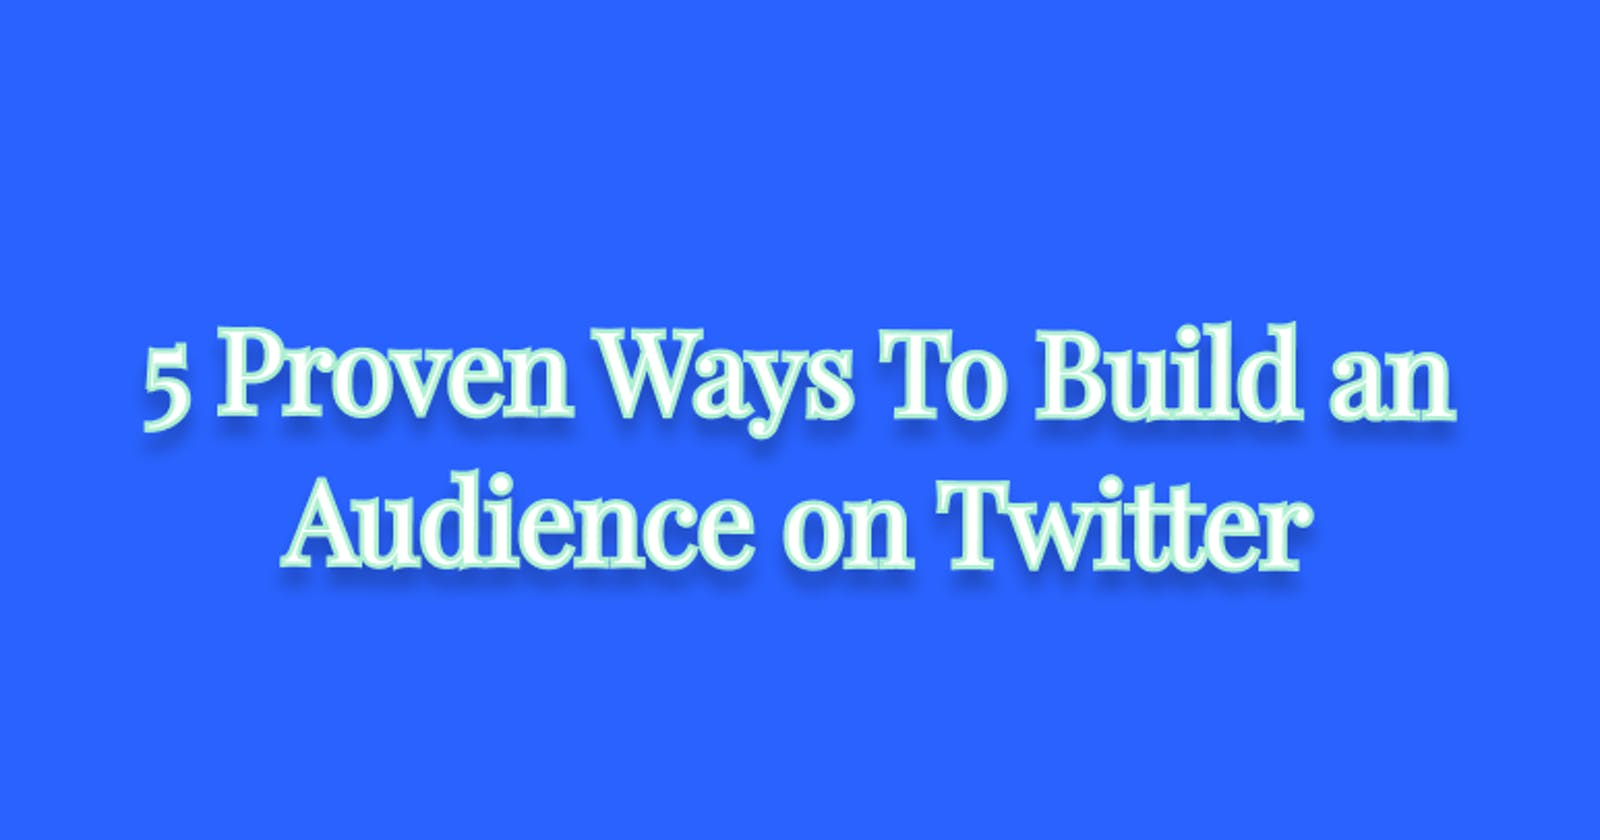 5 Proven Ways To Build an Audience on Twitter